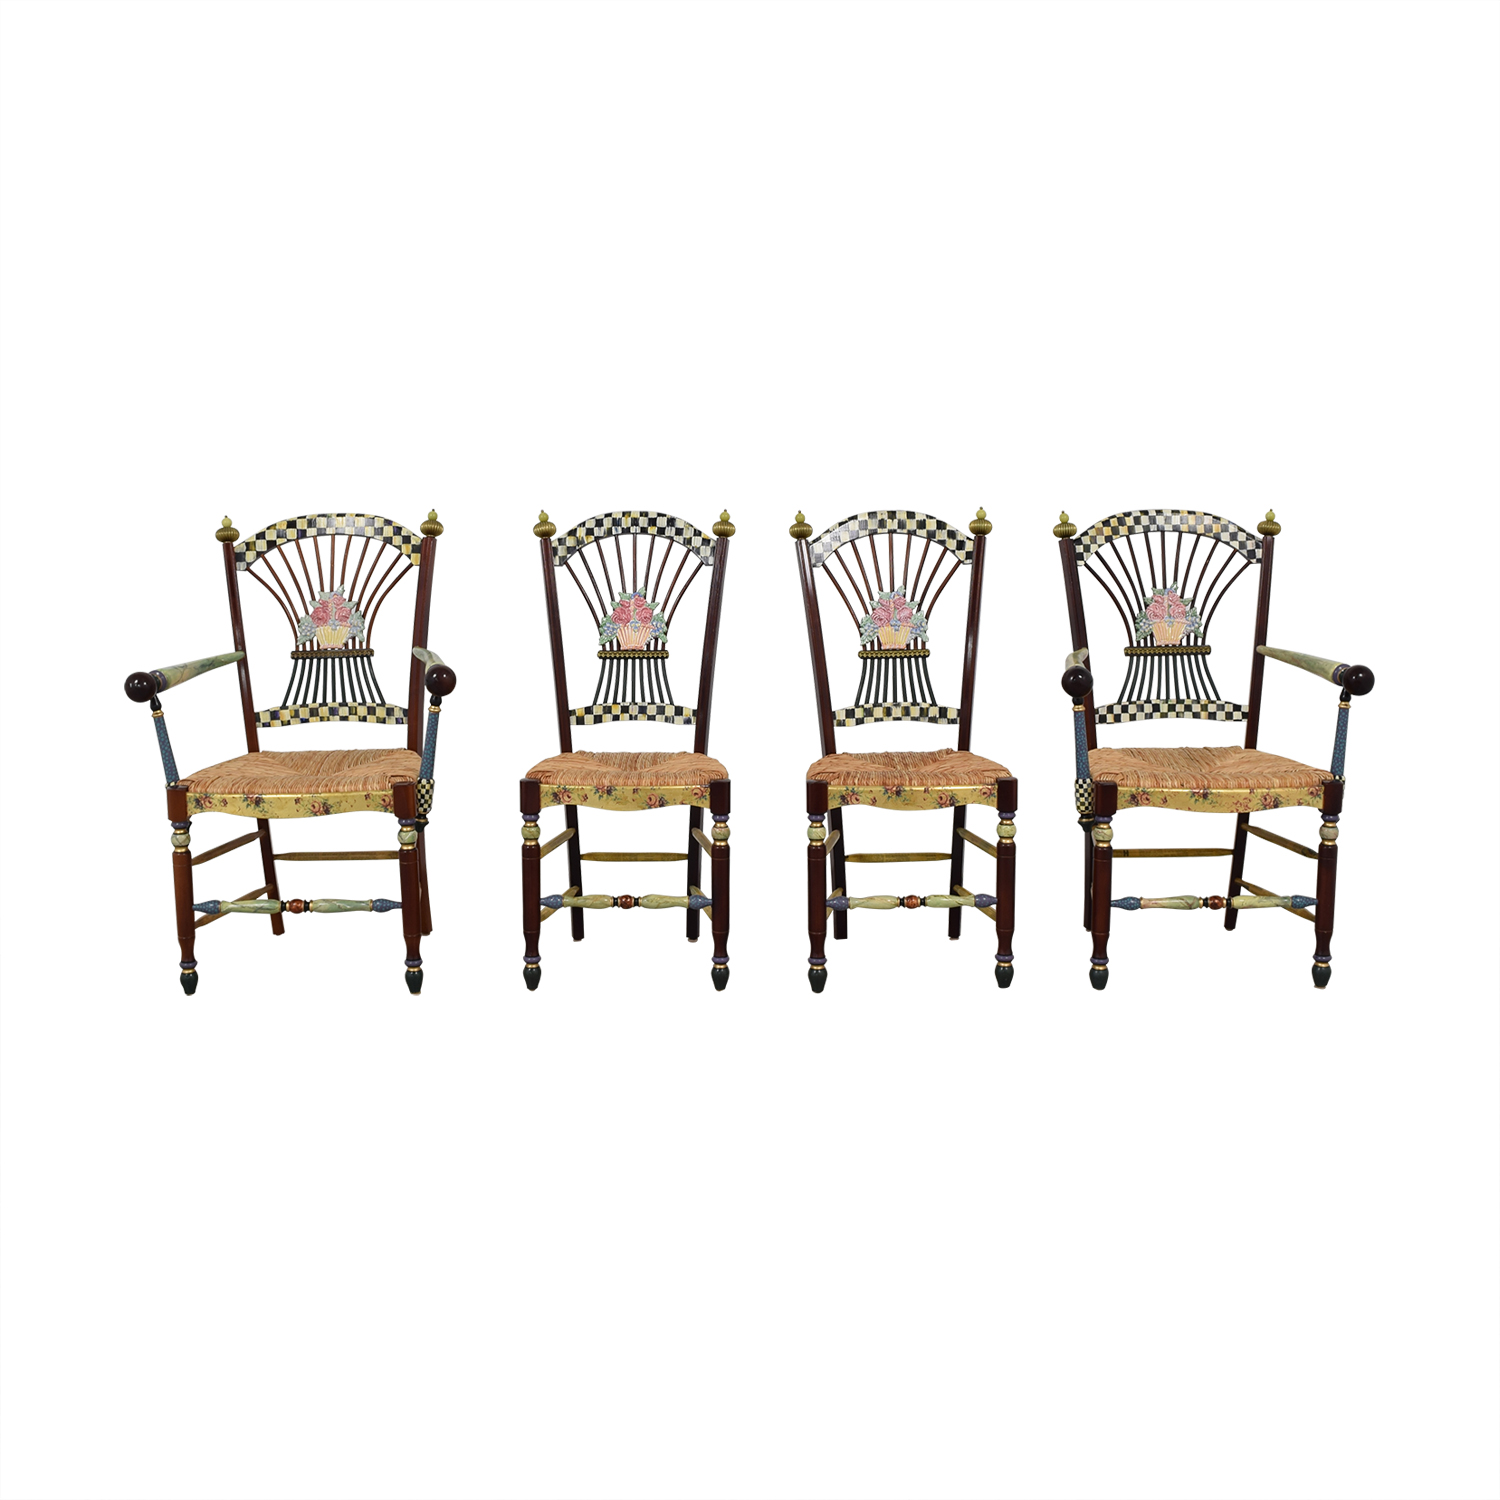 MacKenzie-Childs MacKenzie-Childs Multi-Colored Wicker Dining Chairs discount